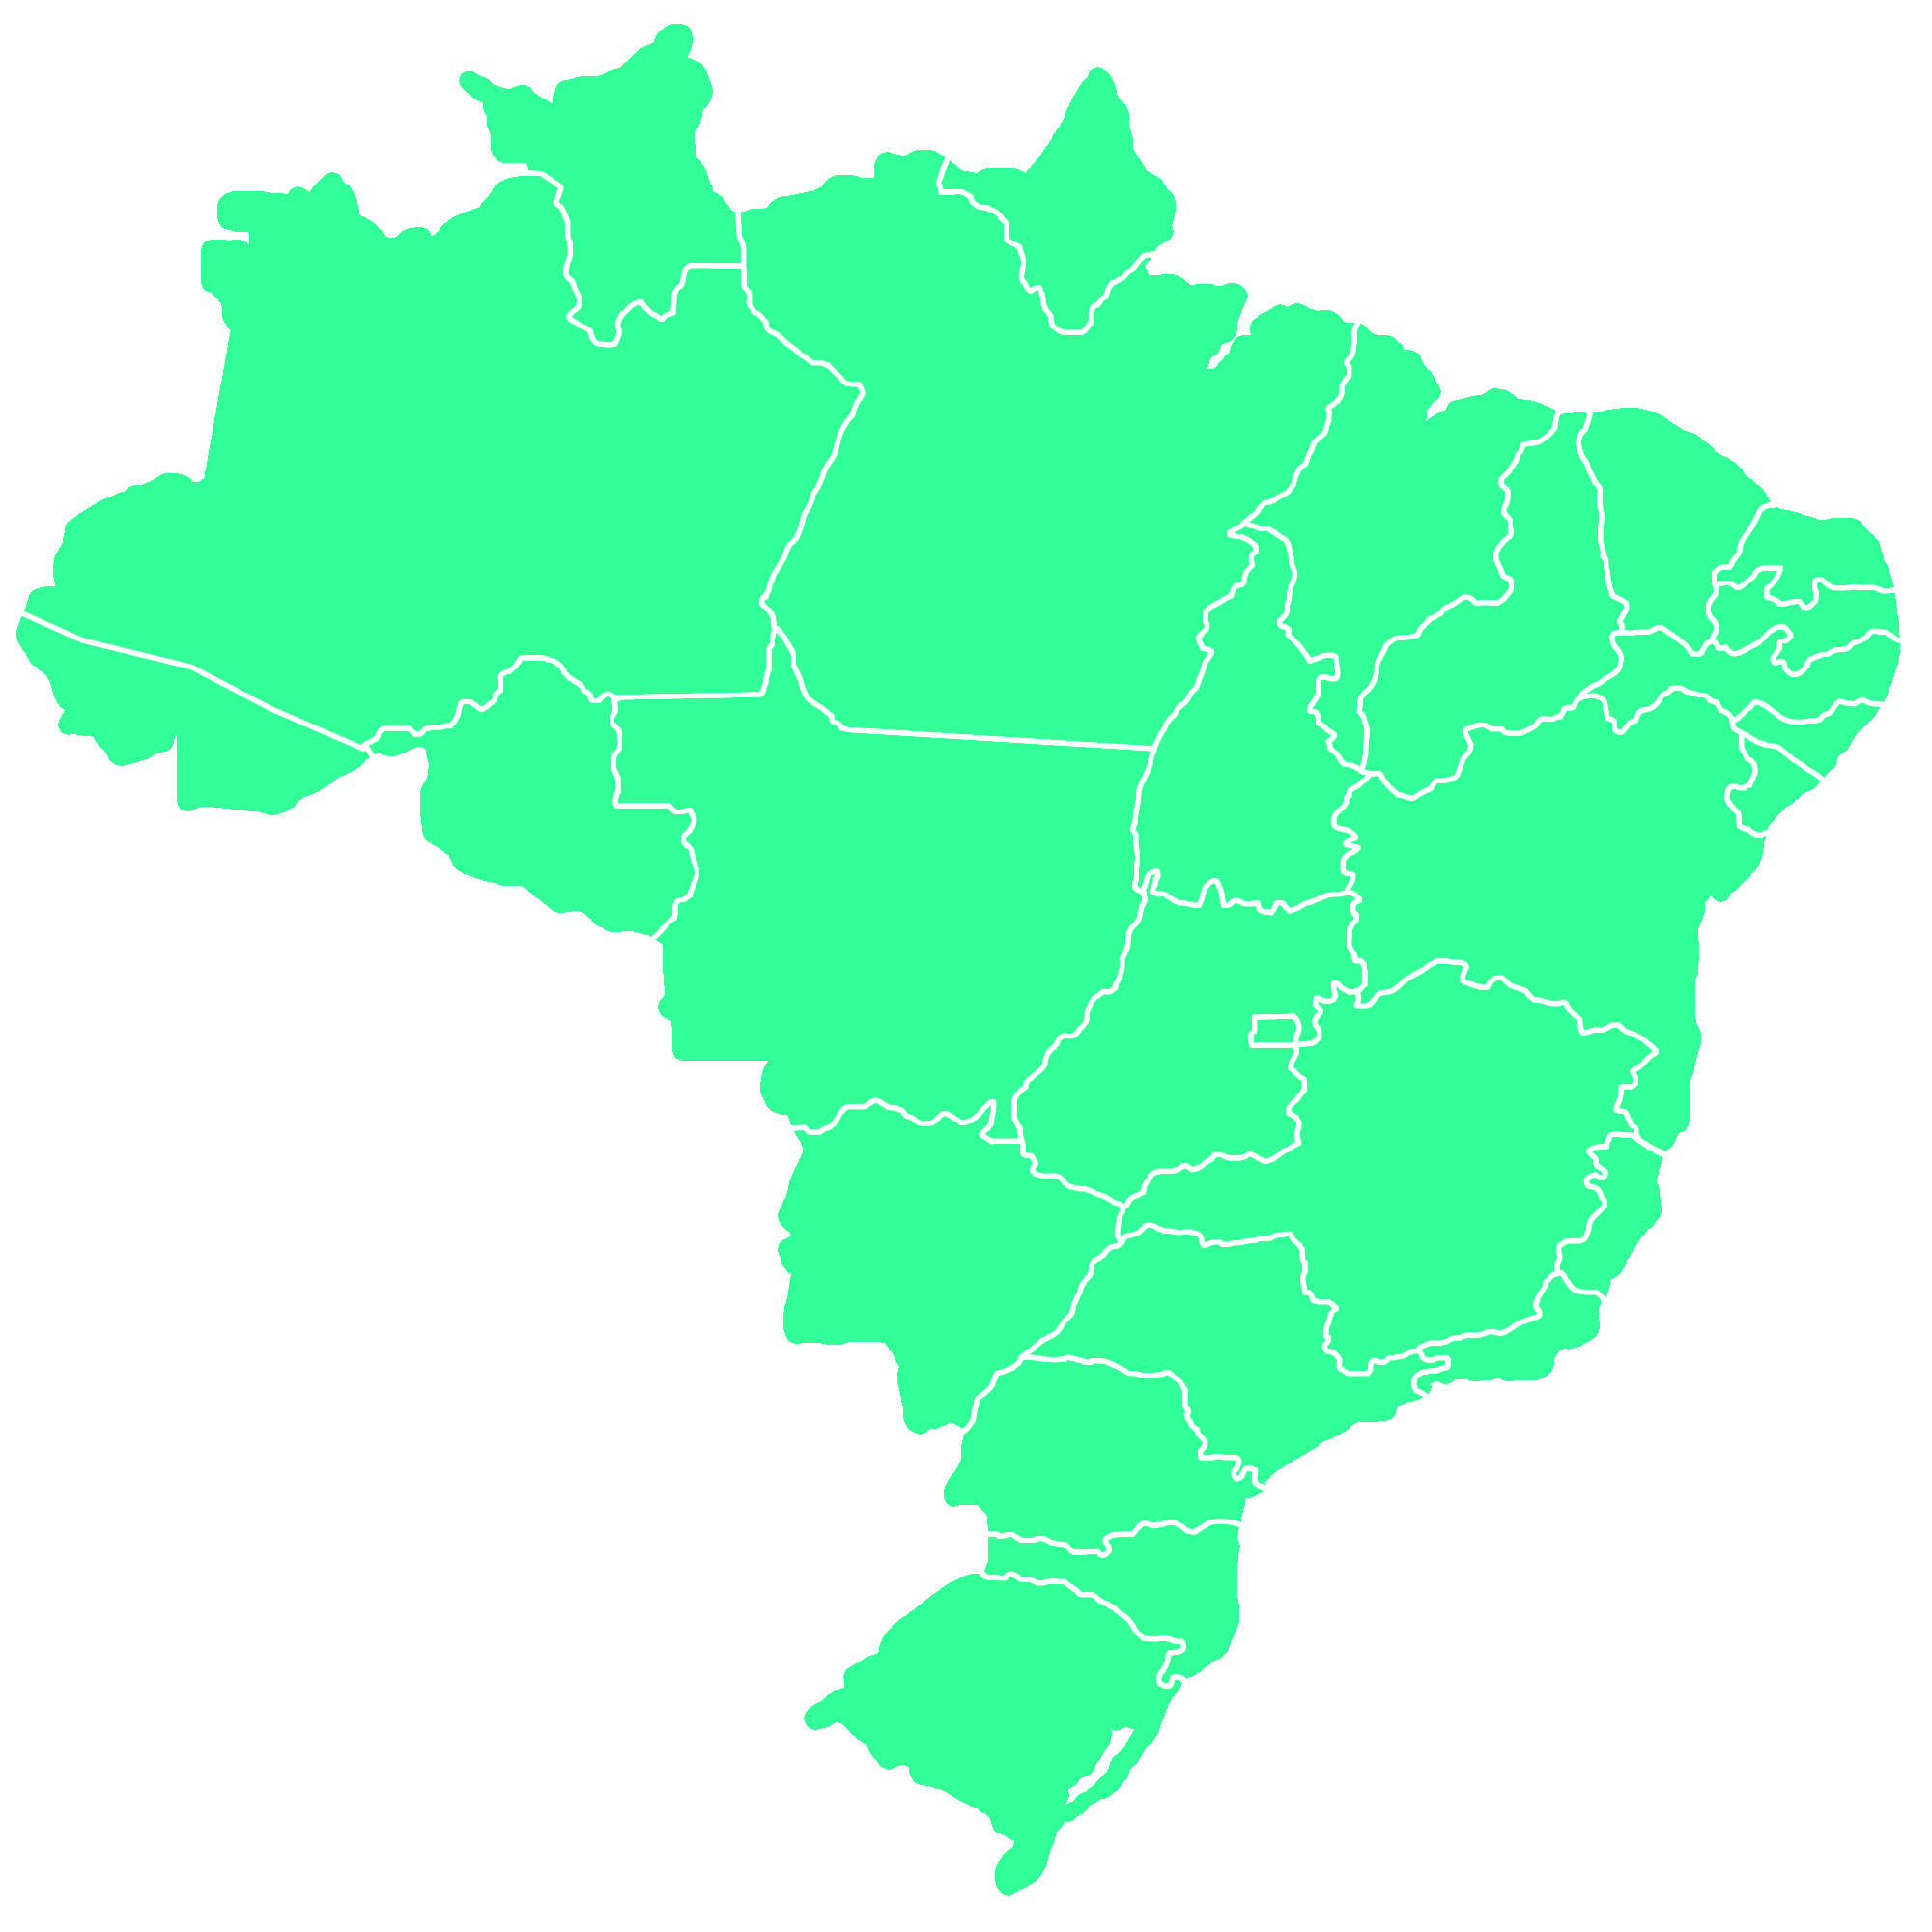 Brazil country png. File map of states